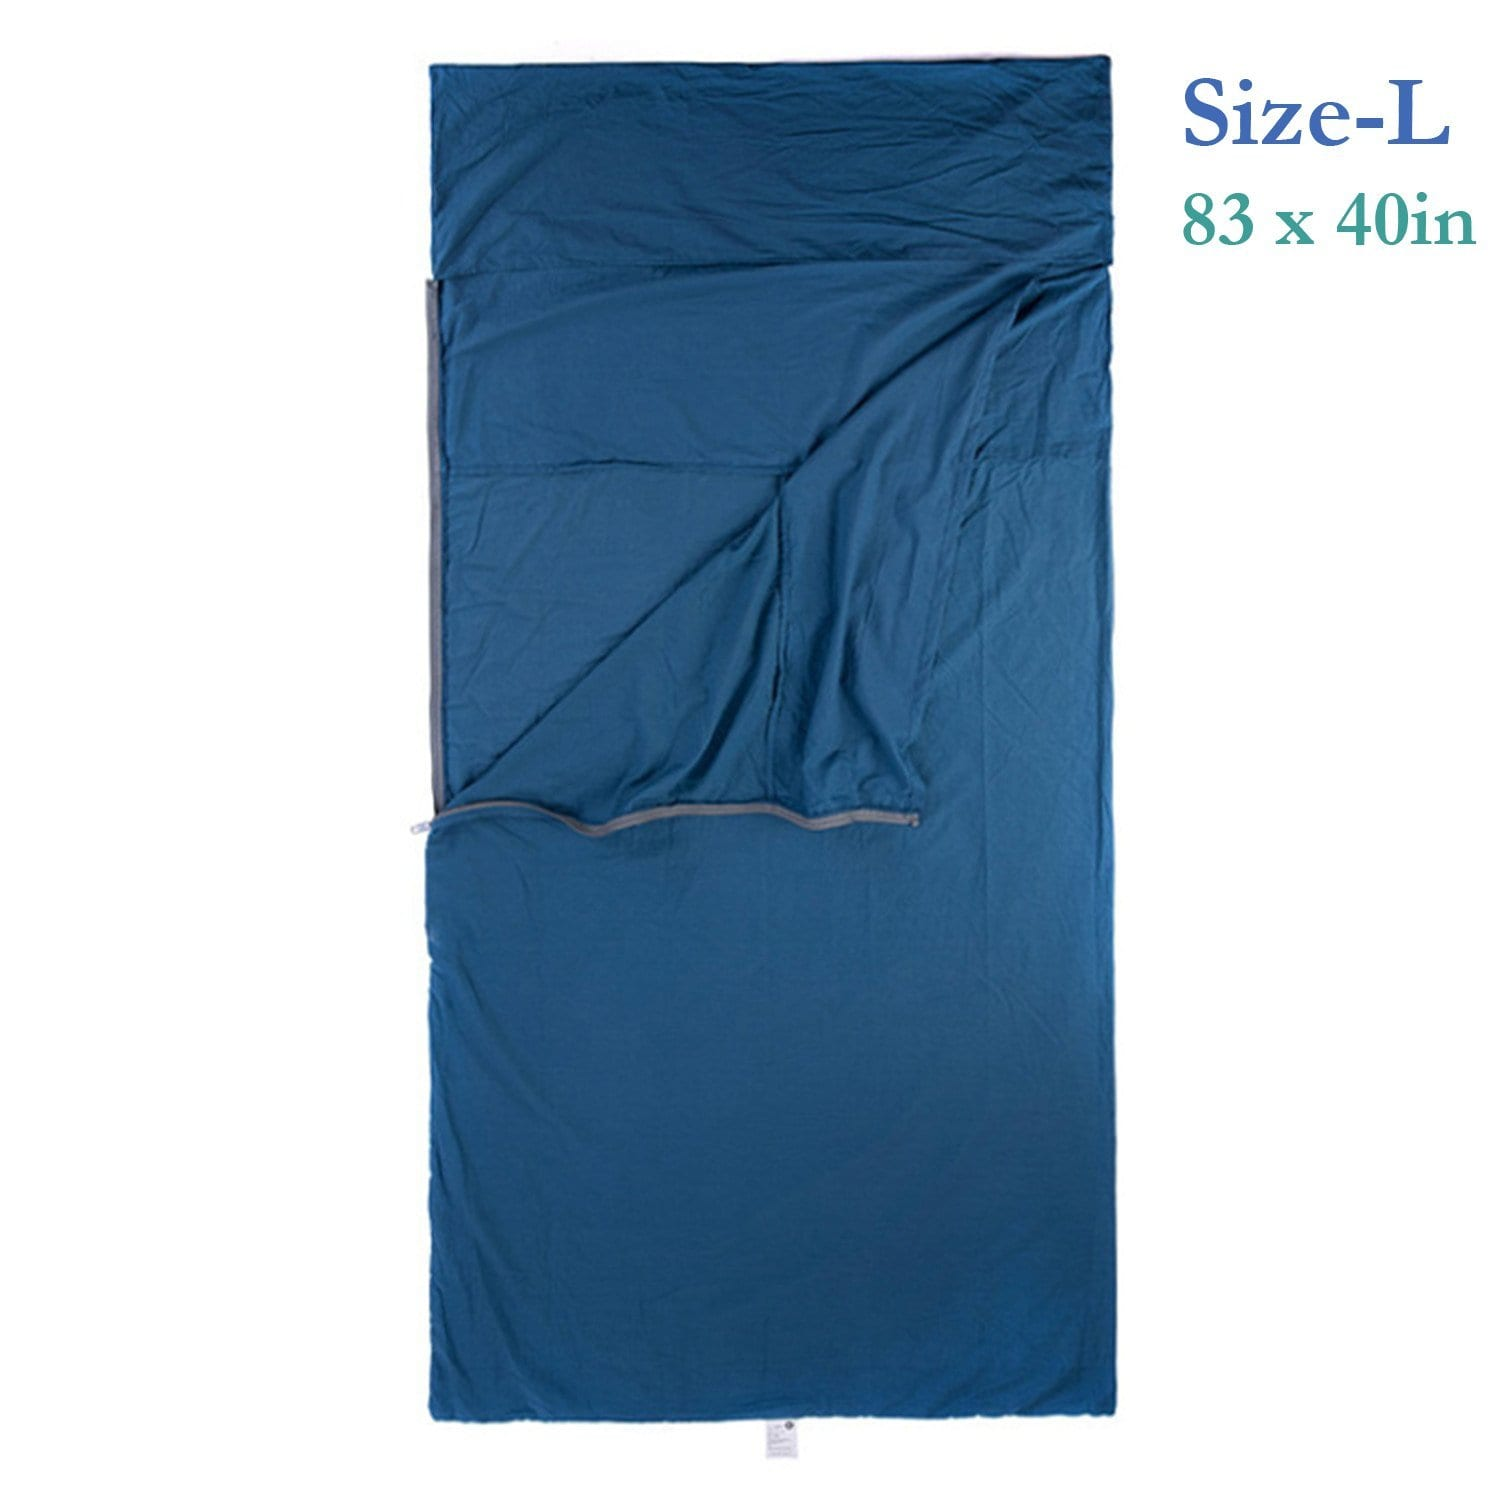 Weanas Cotton Sleeping Bag Liners